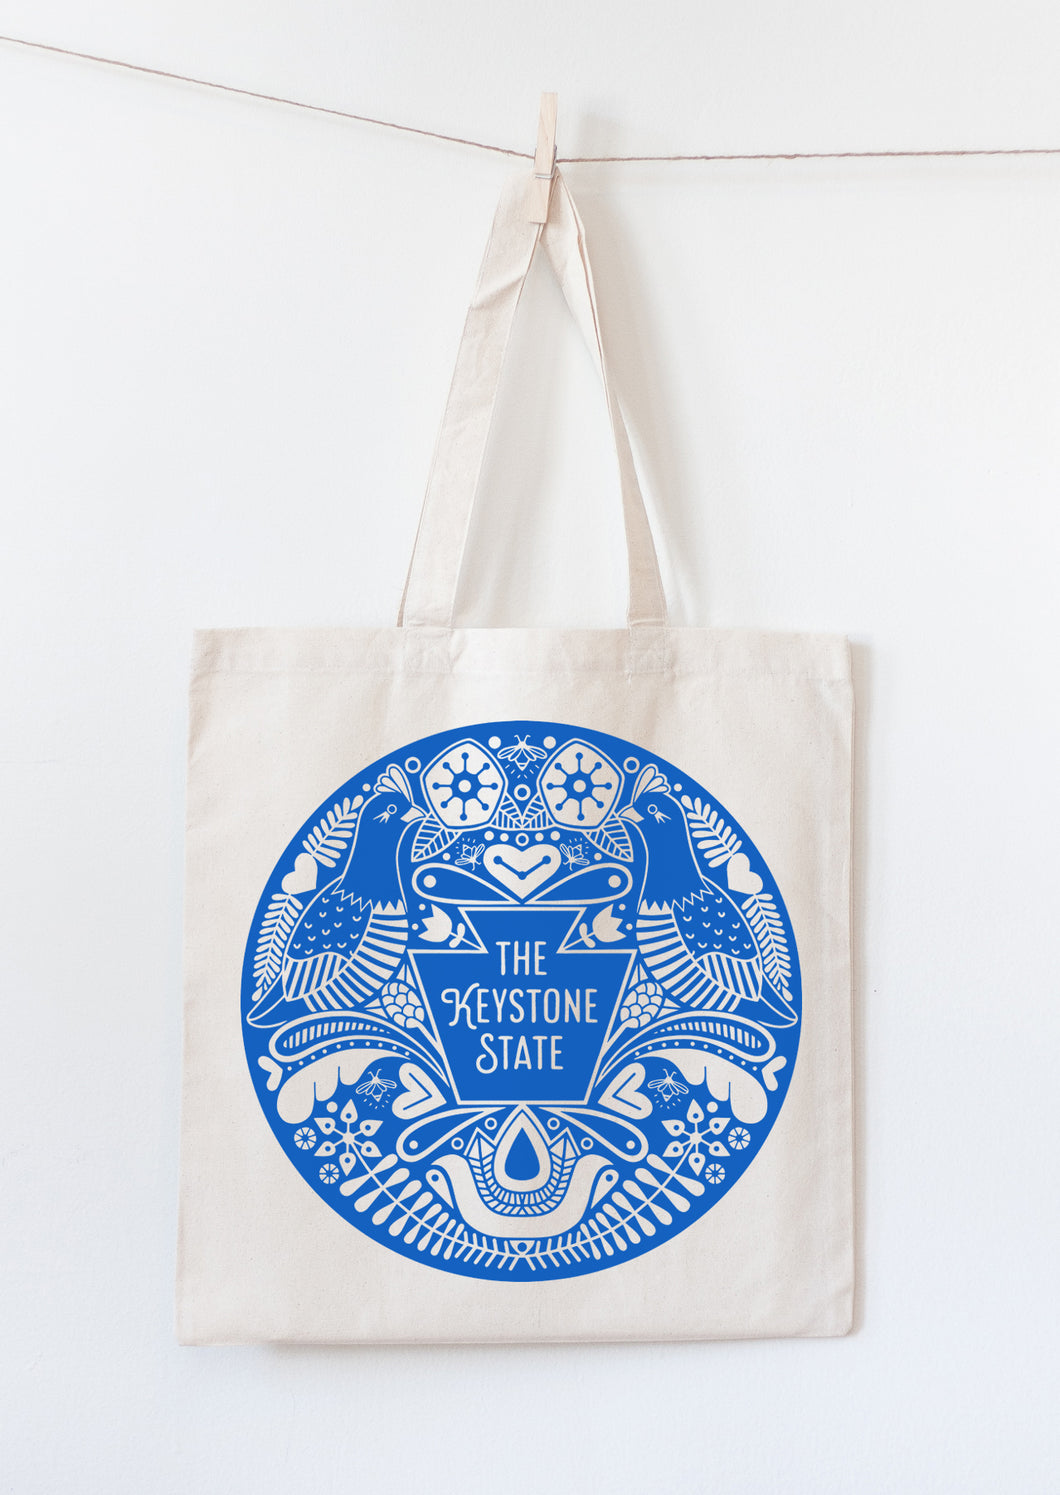 The Keystone State tote bag mockup with Pennsylvania state symbols